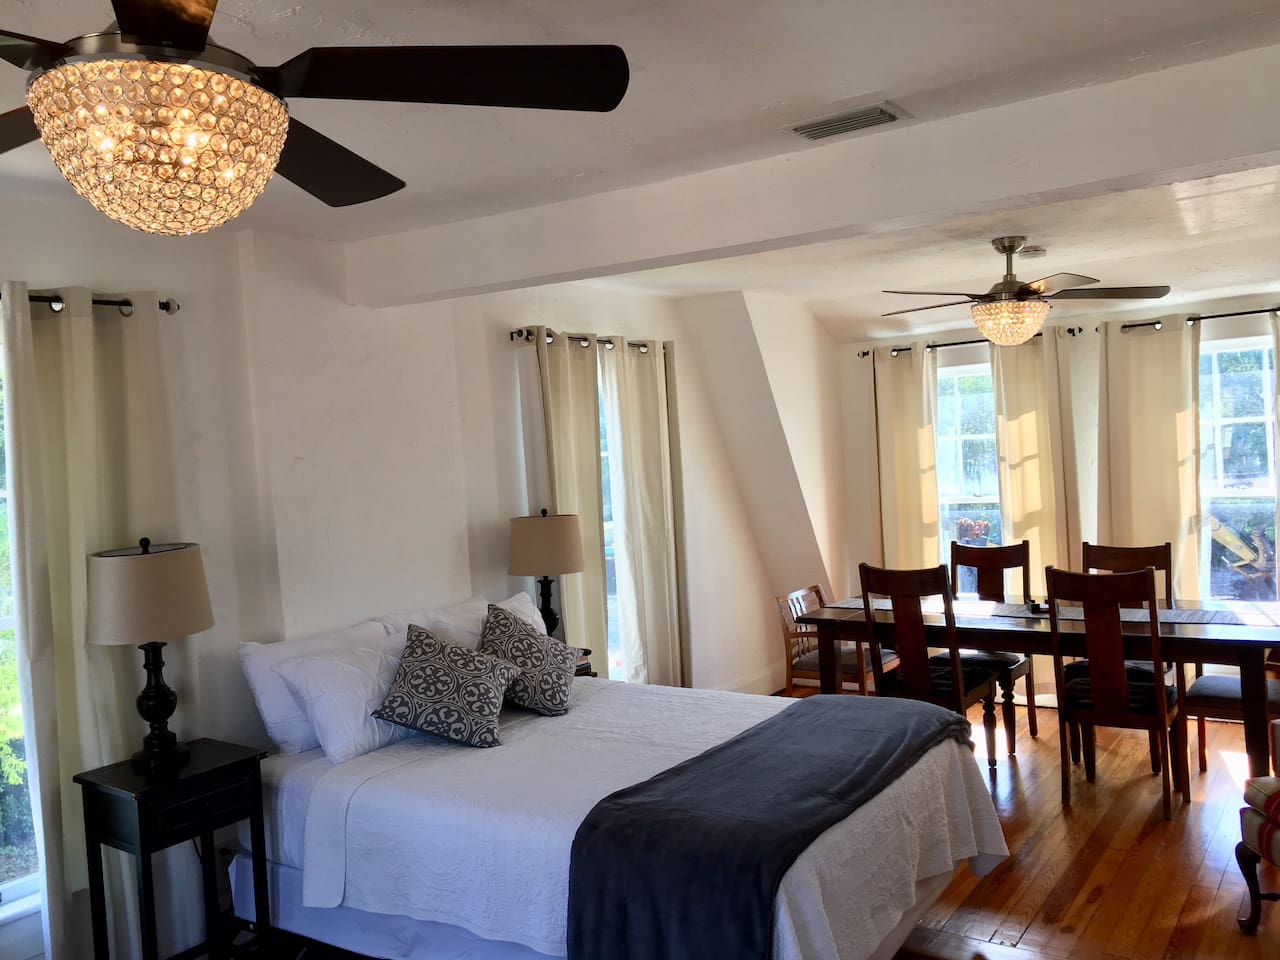 Newly renovated, furn., non-smoking 1 BR, 1 private bath. Coffee shop, craft beer/wine bar, a café w/ light bites,  bookstore, laundry. Courtyard. Located near Downtown, Beaches, Bay, & attractions. Light live music (acoustic guitar and jazz).